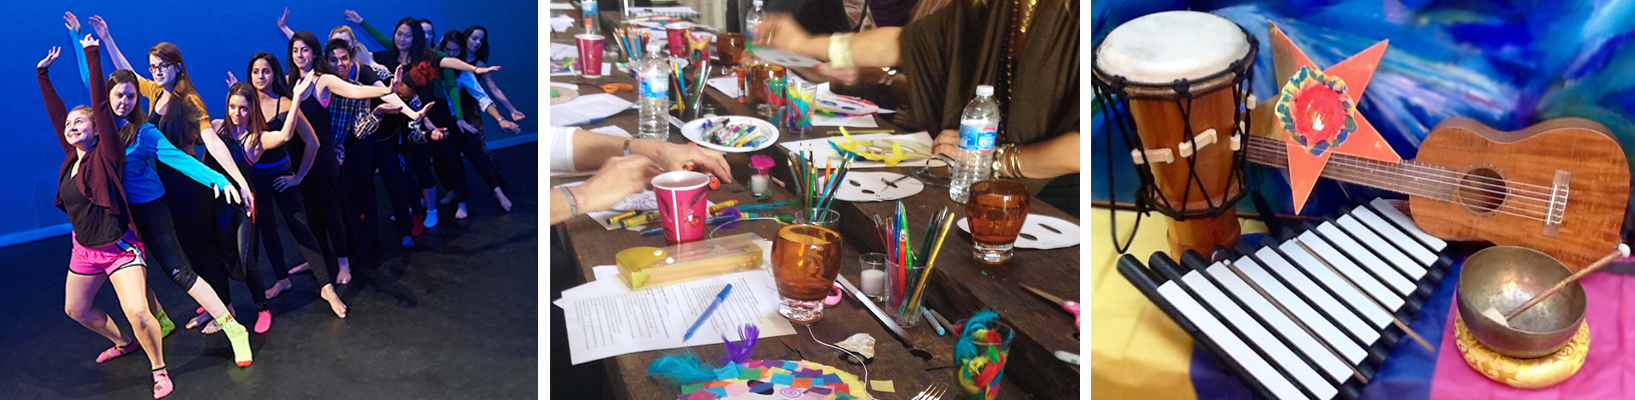 creative arts therapy photos